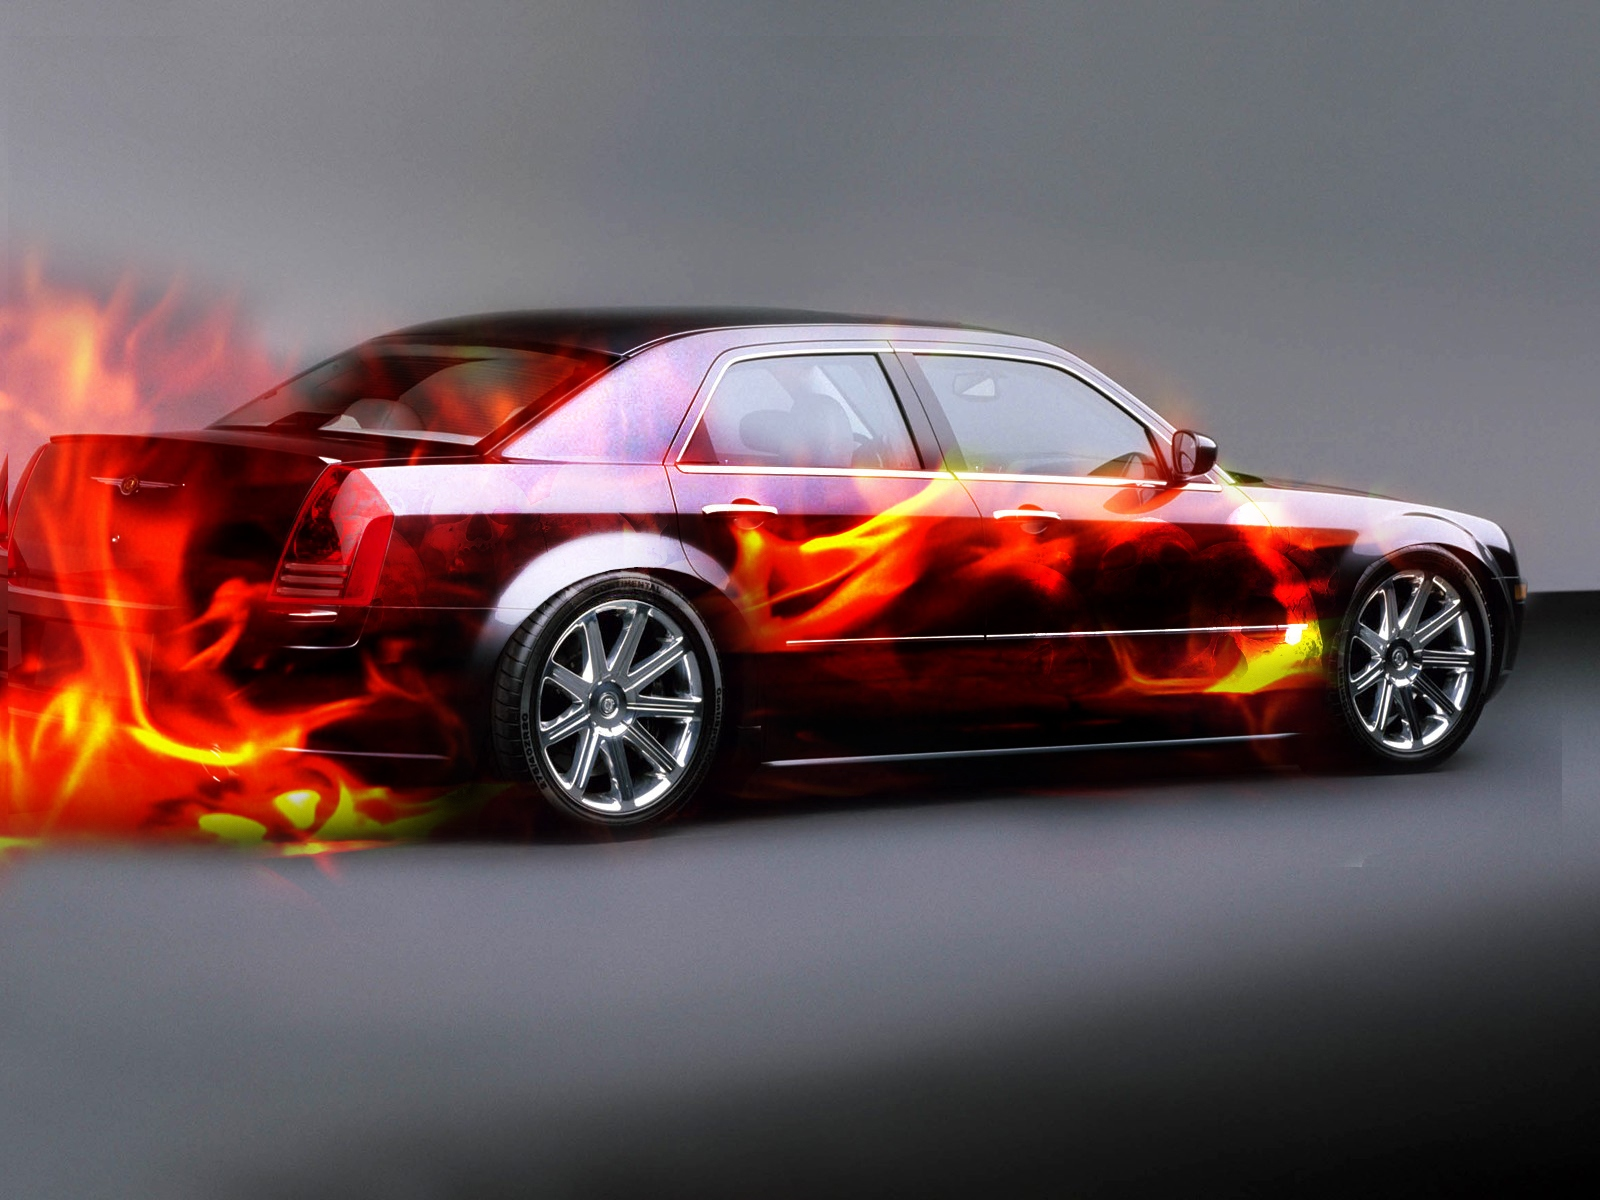 Hot car wallpaper free wallpapers for pc - Car wallpaper for computer ...